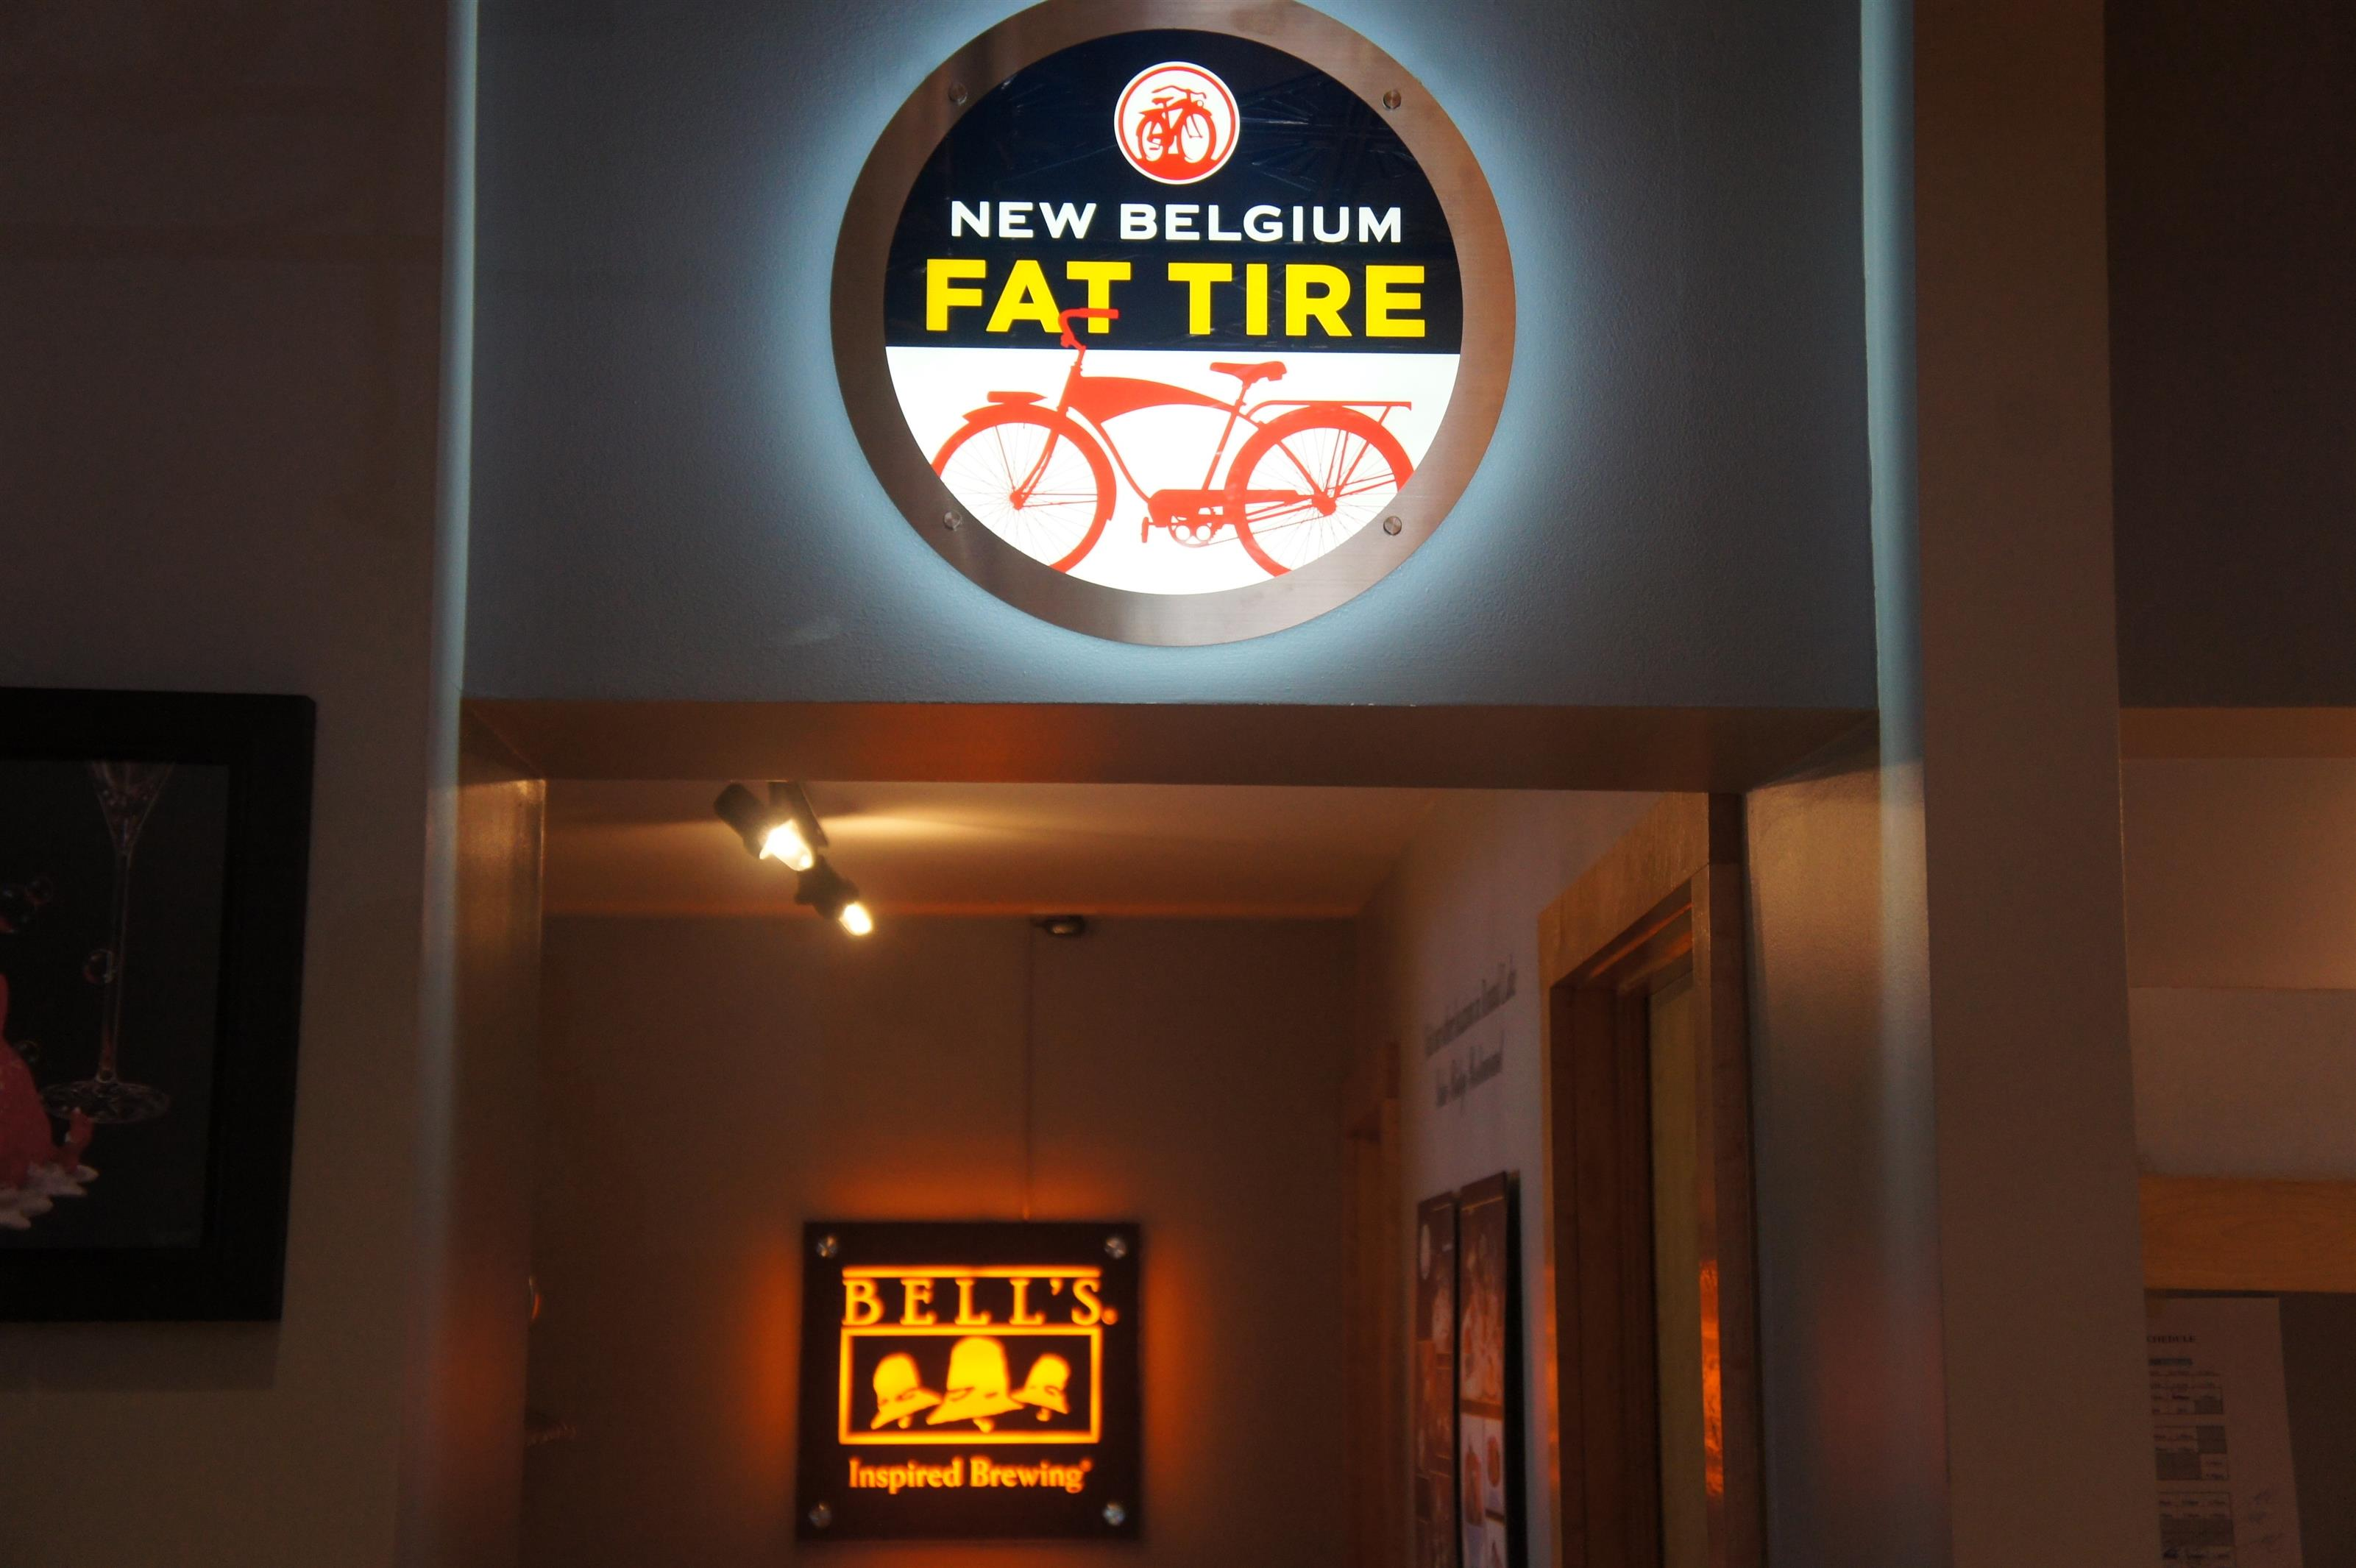 """New Belgium Fat Tire"" neon sign on the wall"